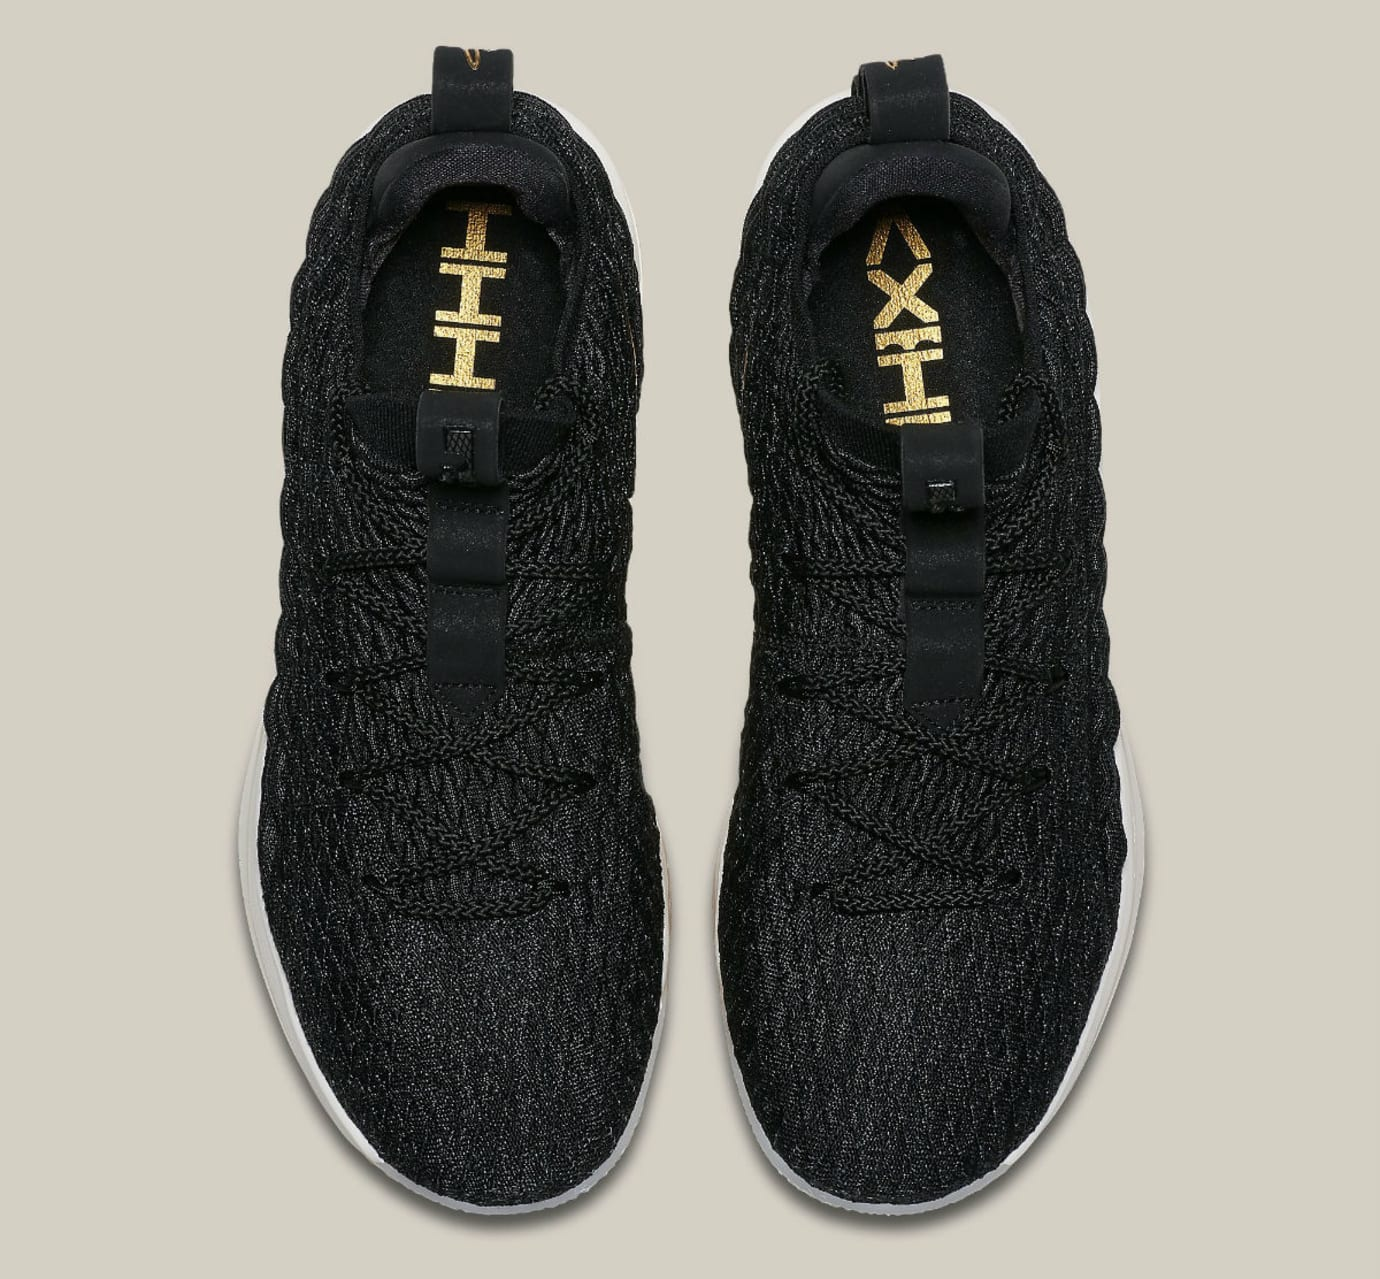 the latest f0322 975bc Nike LeBron 15 Low Black Gold Phantom Release Date AO1756 ...